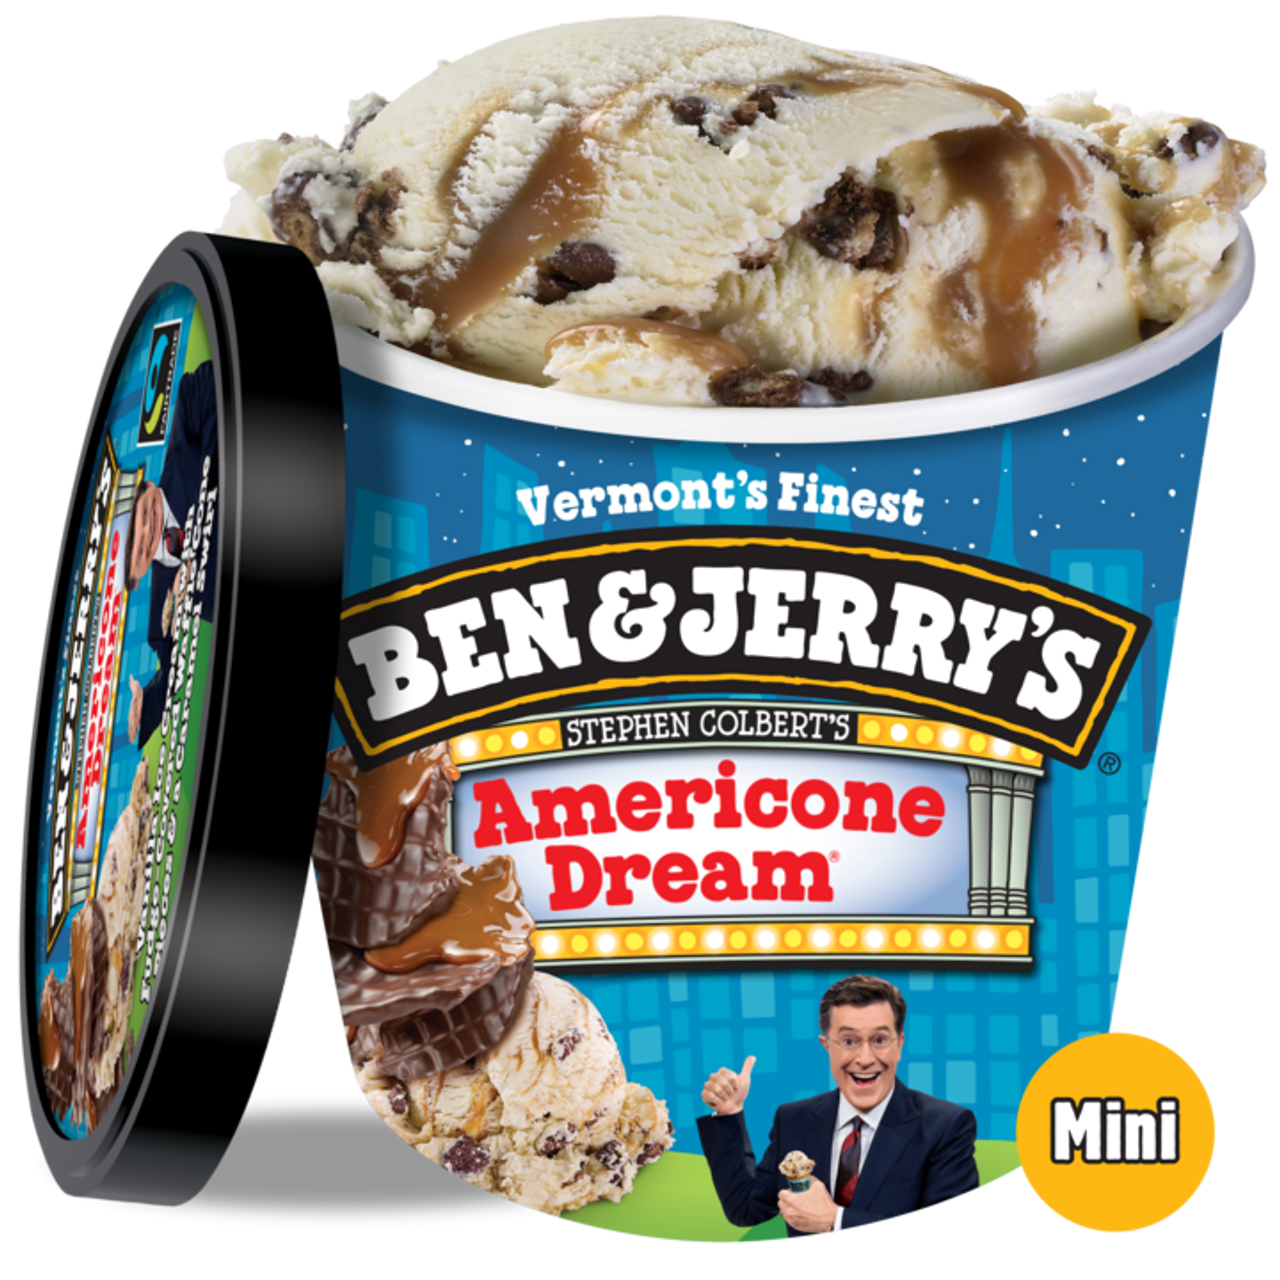 Ben Jerry S Americone Dream Stephen Colbert S Ice Cream Cups 12 Count Rocketdsd Sweeter than the bill of rights, colder than valley forge and with twice as much. ben jerry s americone dream stephen colbert s ice cream cups 12 count